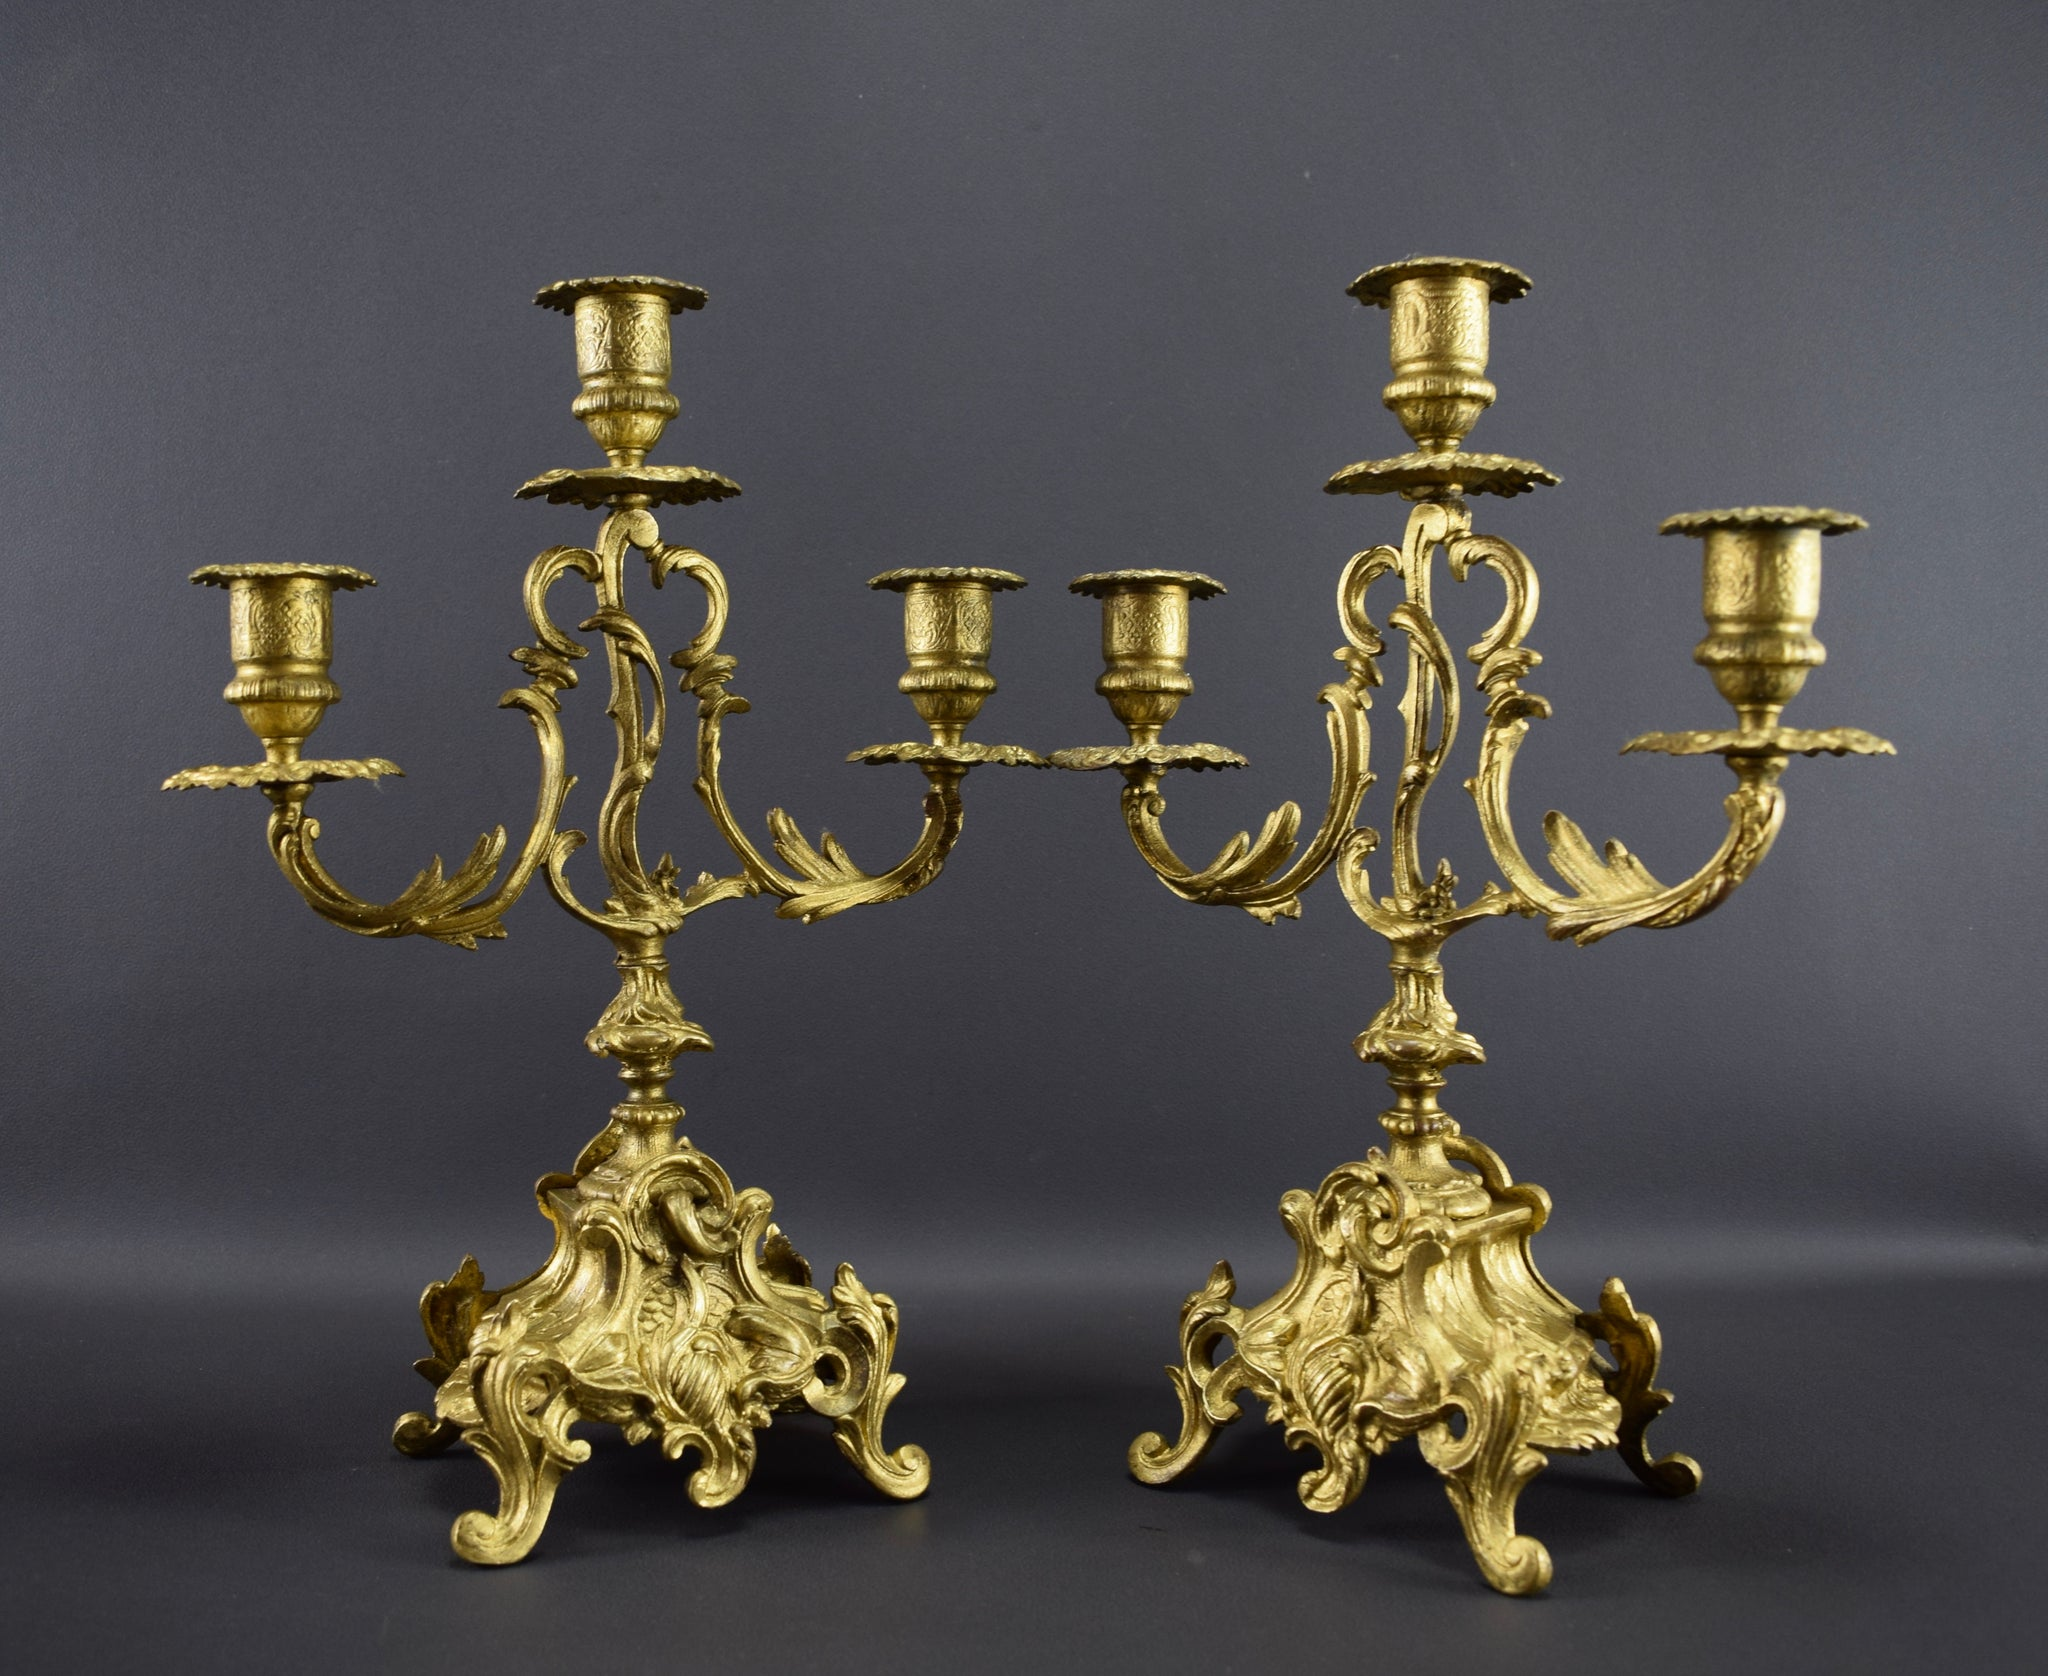 Pair of Louis XV gilt bronze candlesticks